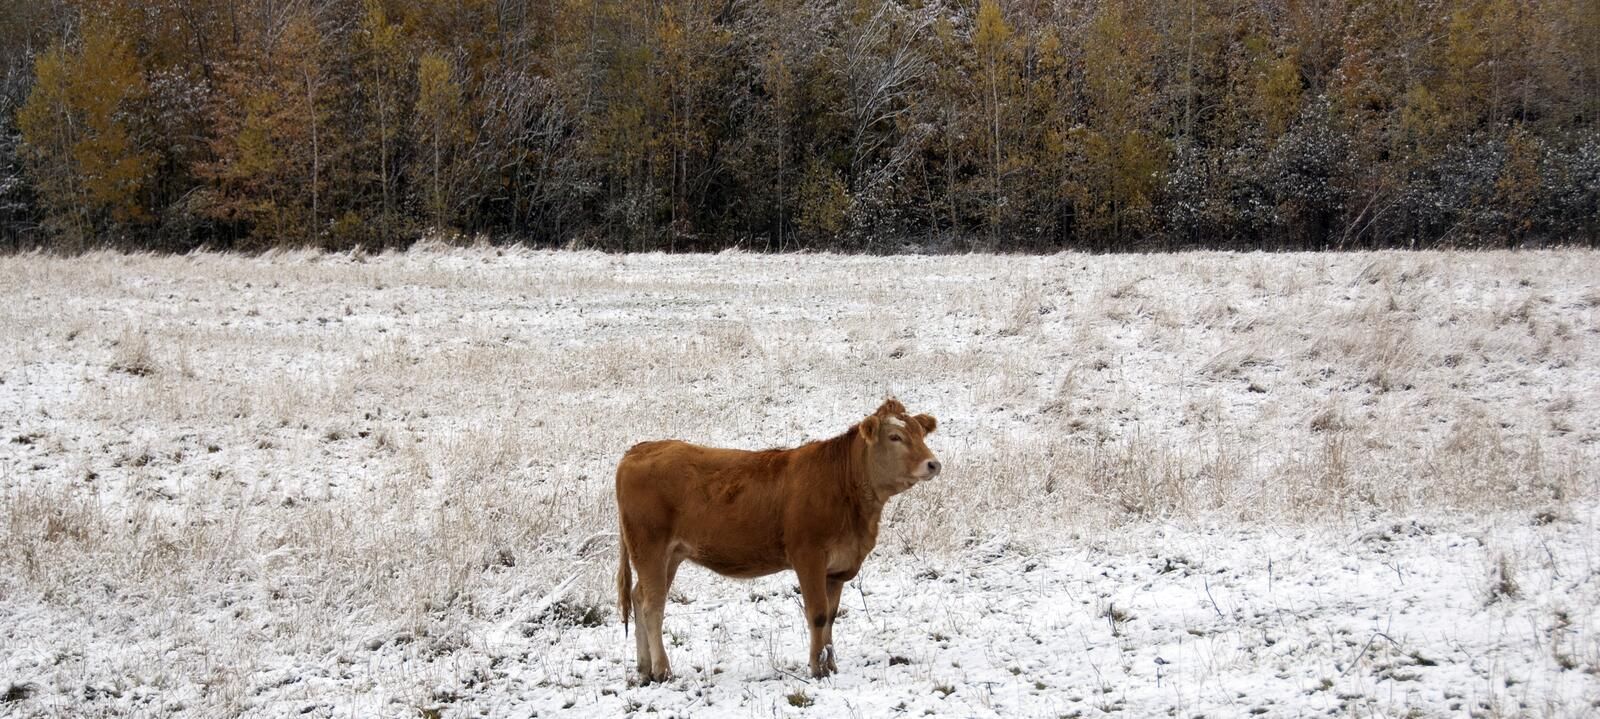 Limousin cattle  in winter Quebec Canada. Limousin cattle are a breed of highly muscled beef cattle originating from the Limousin and Marche regions of France stock photo